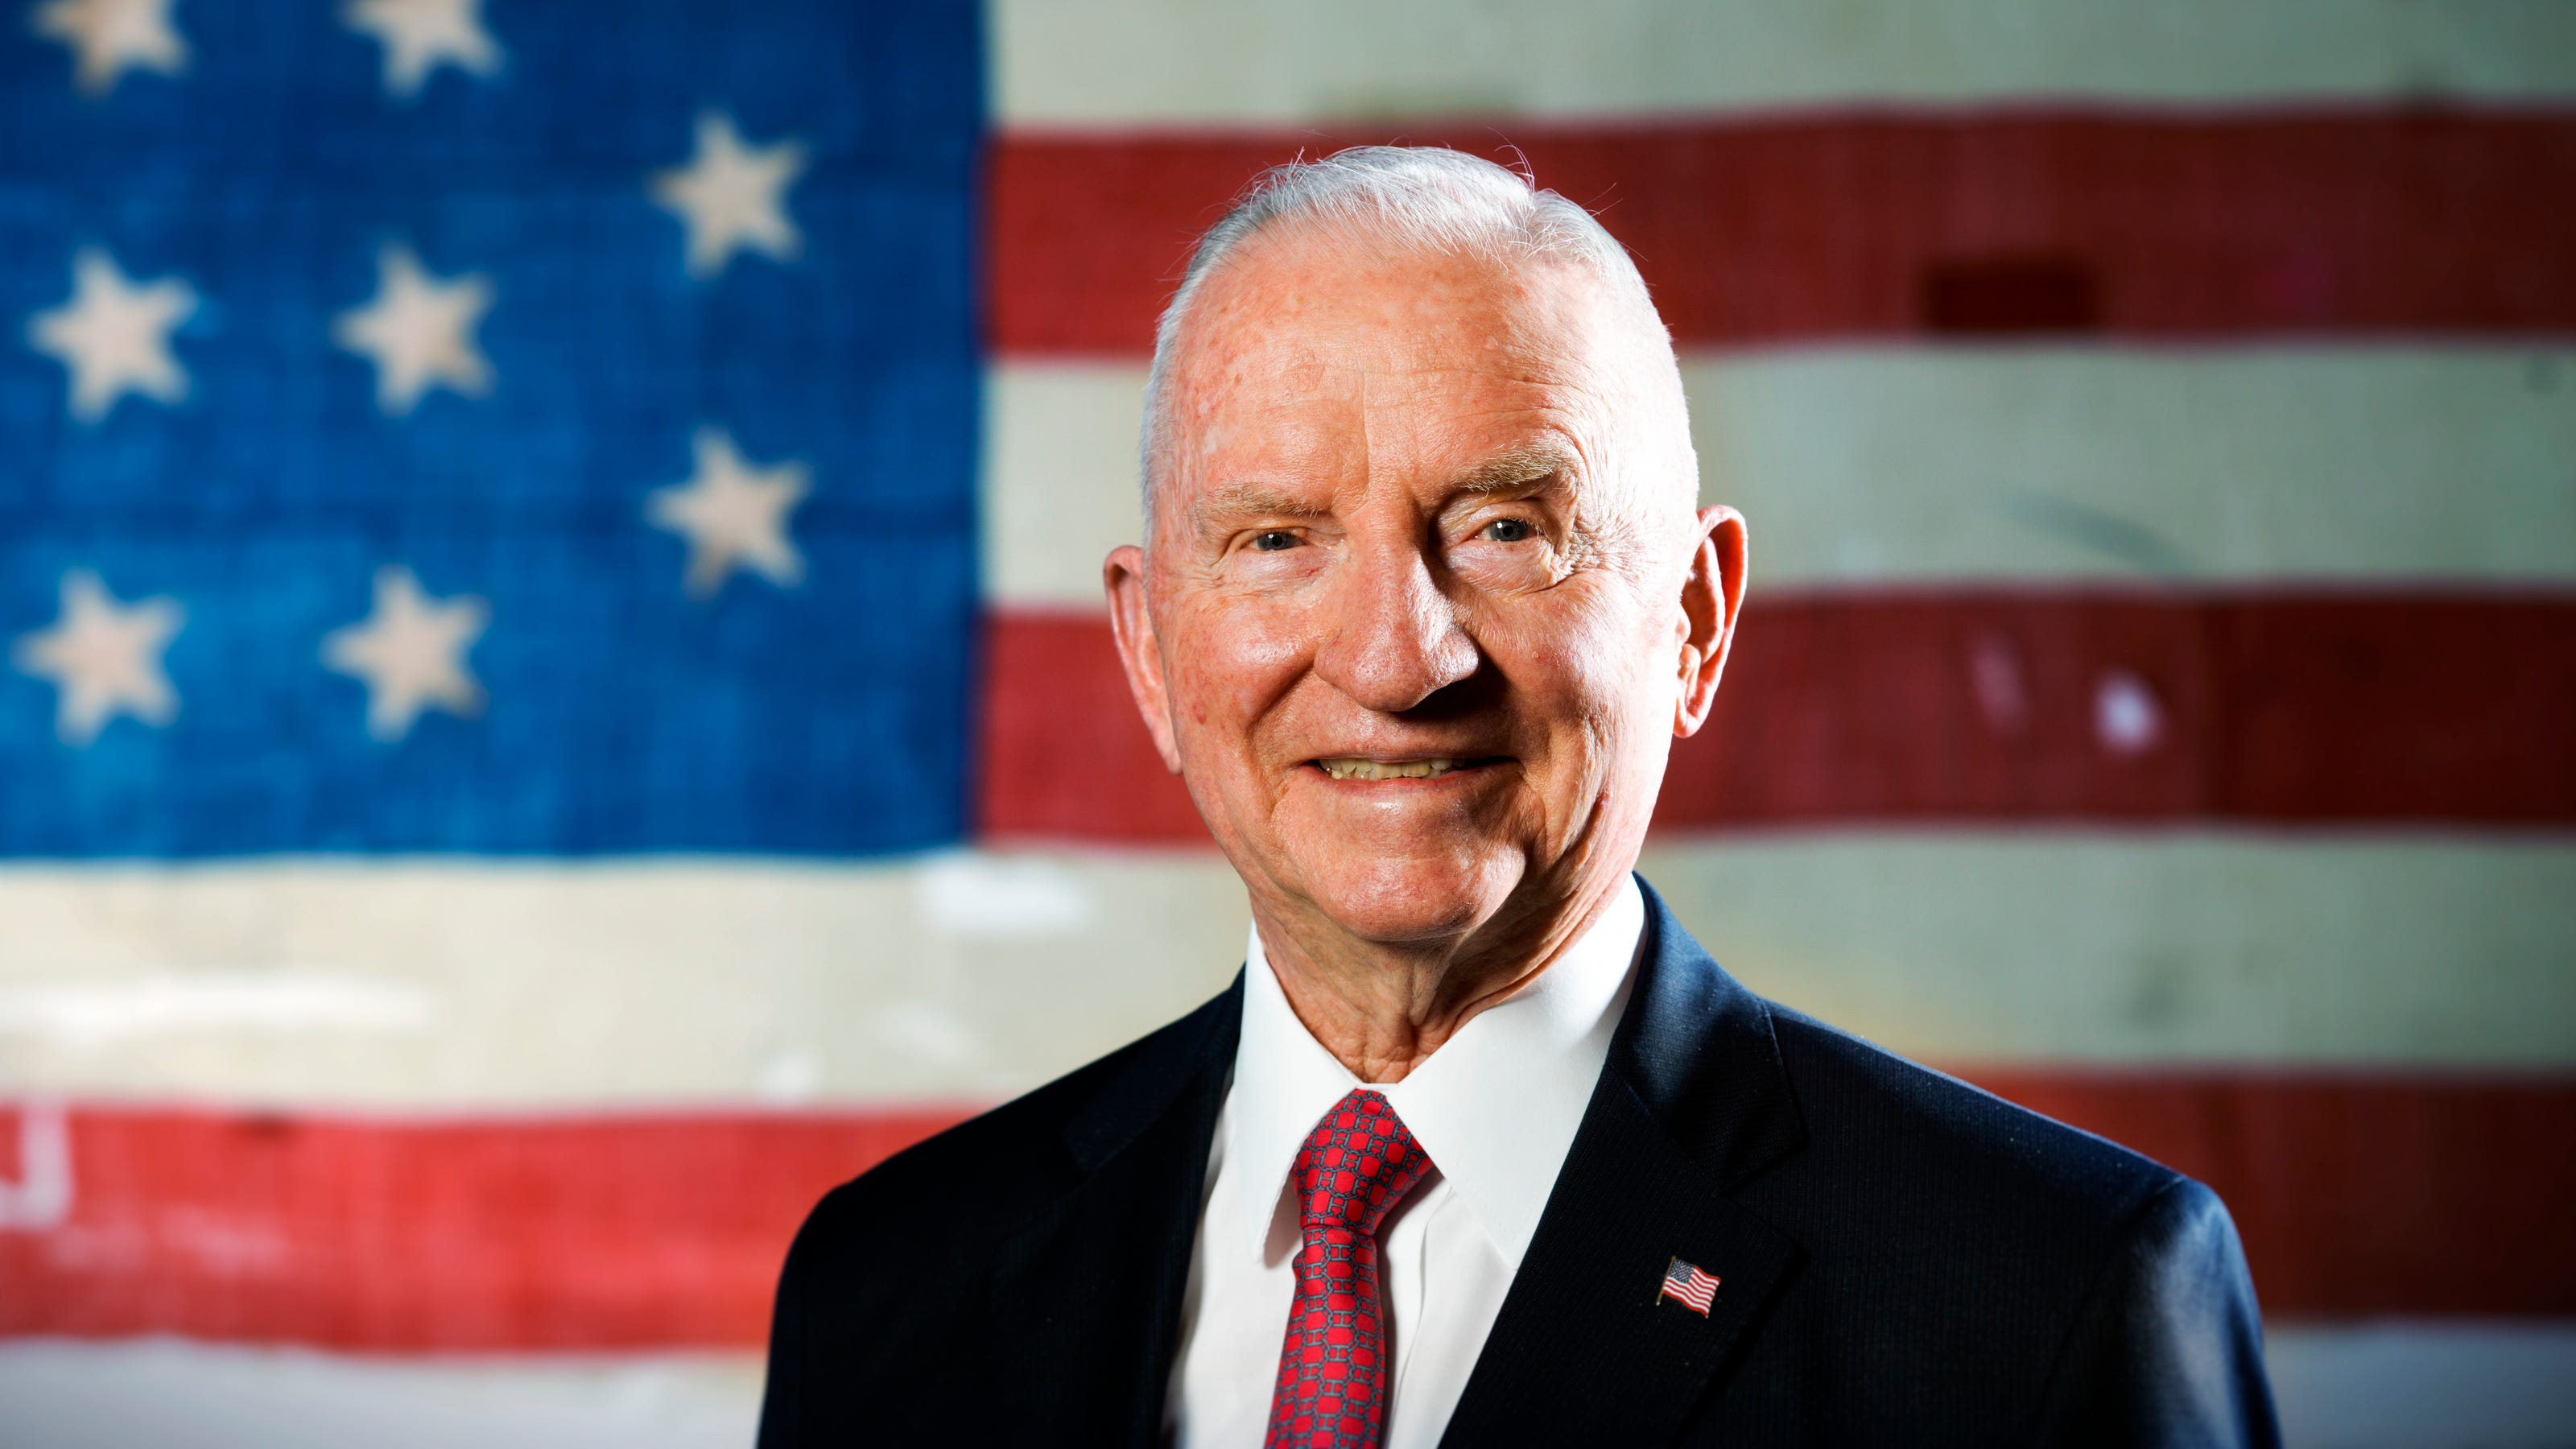 ross perot investments company